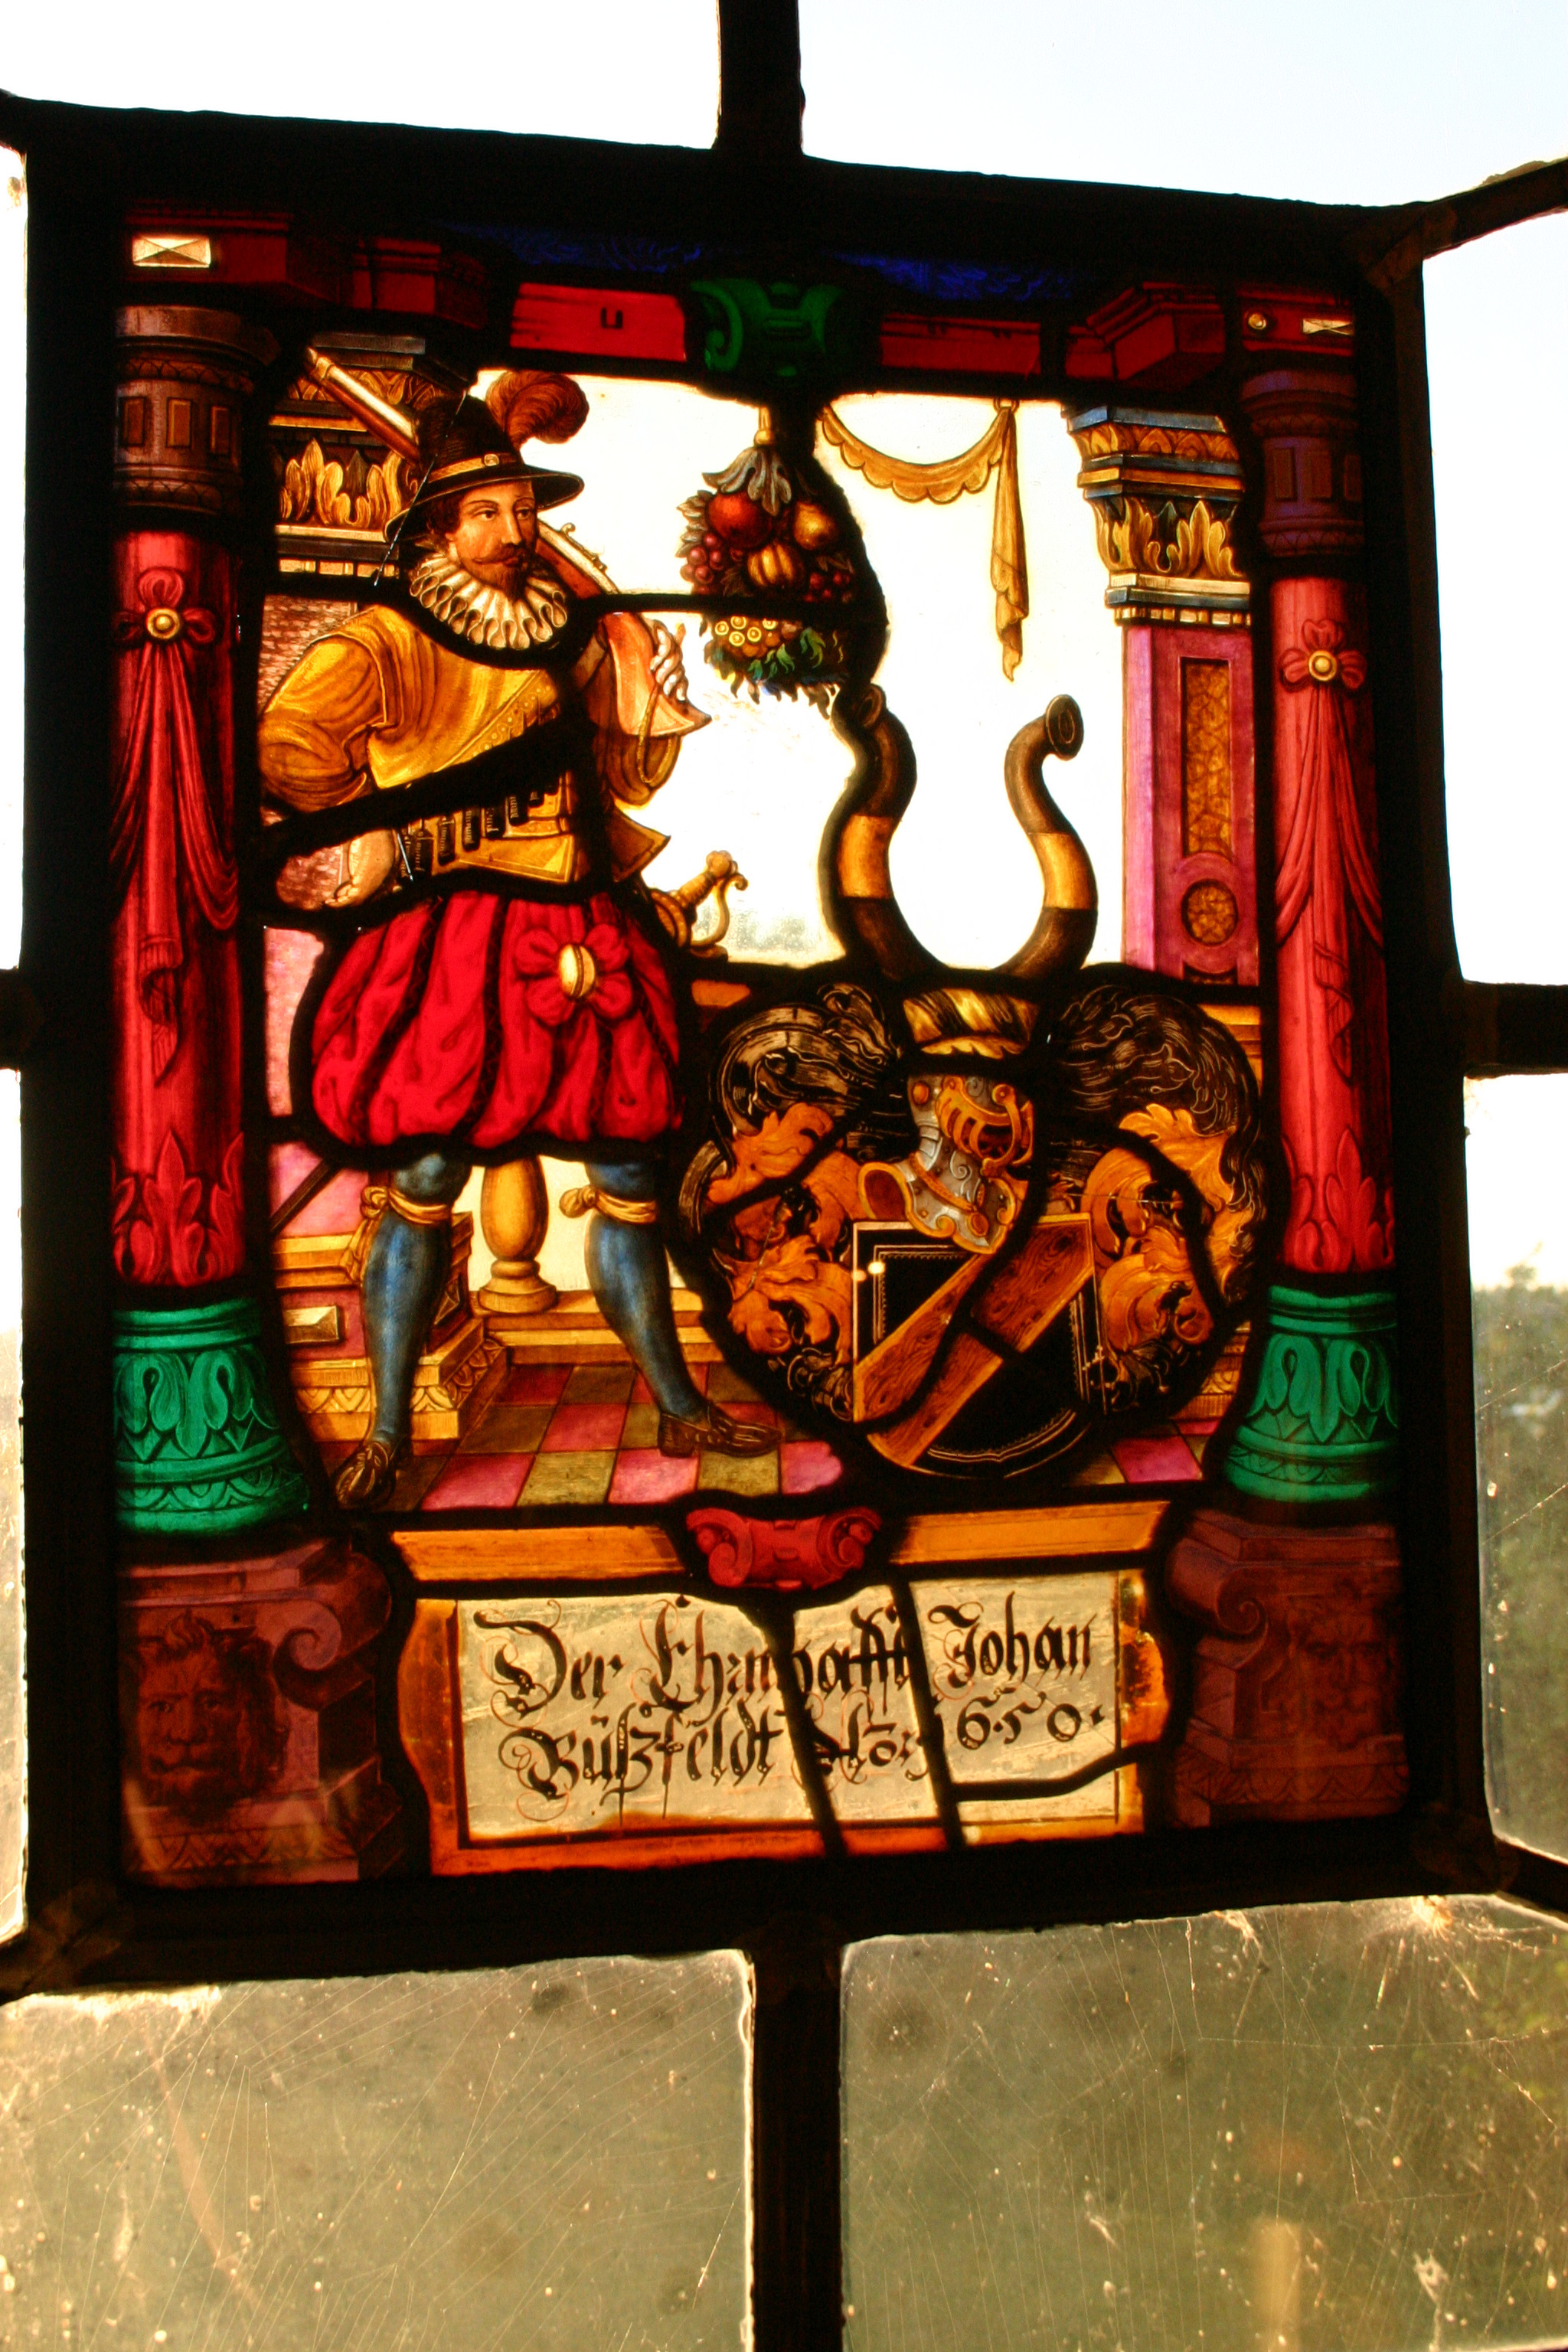 Stained glass from the 16th century